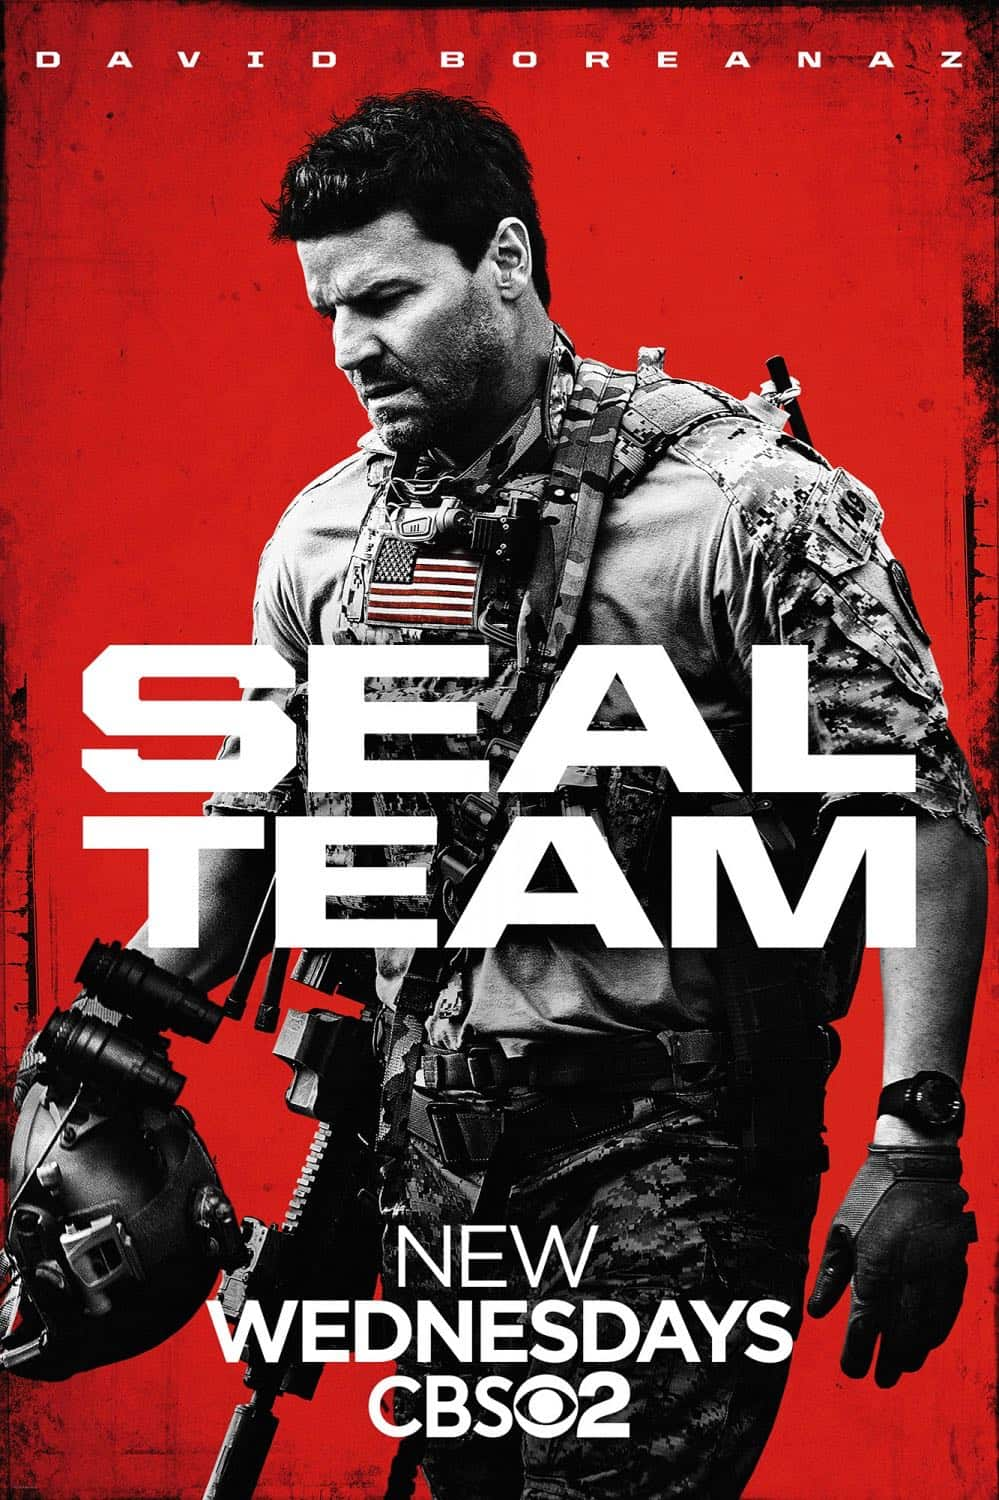 Seal-Team-Poster-CBS-David-Boreanaz-2